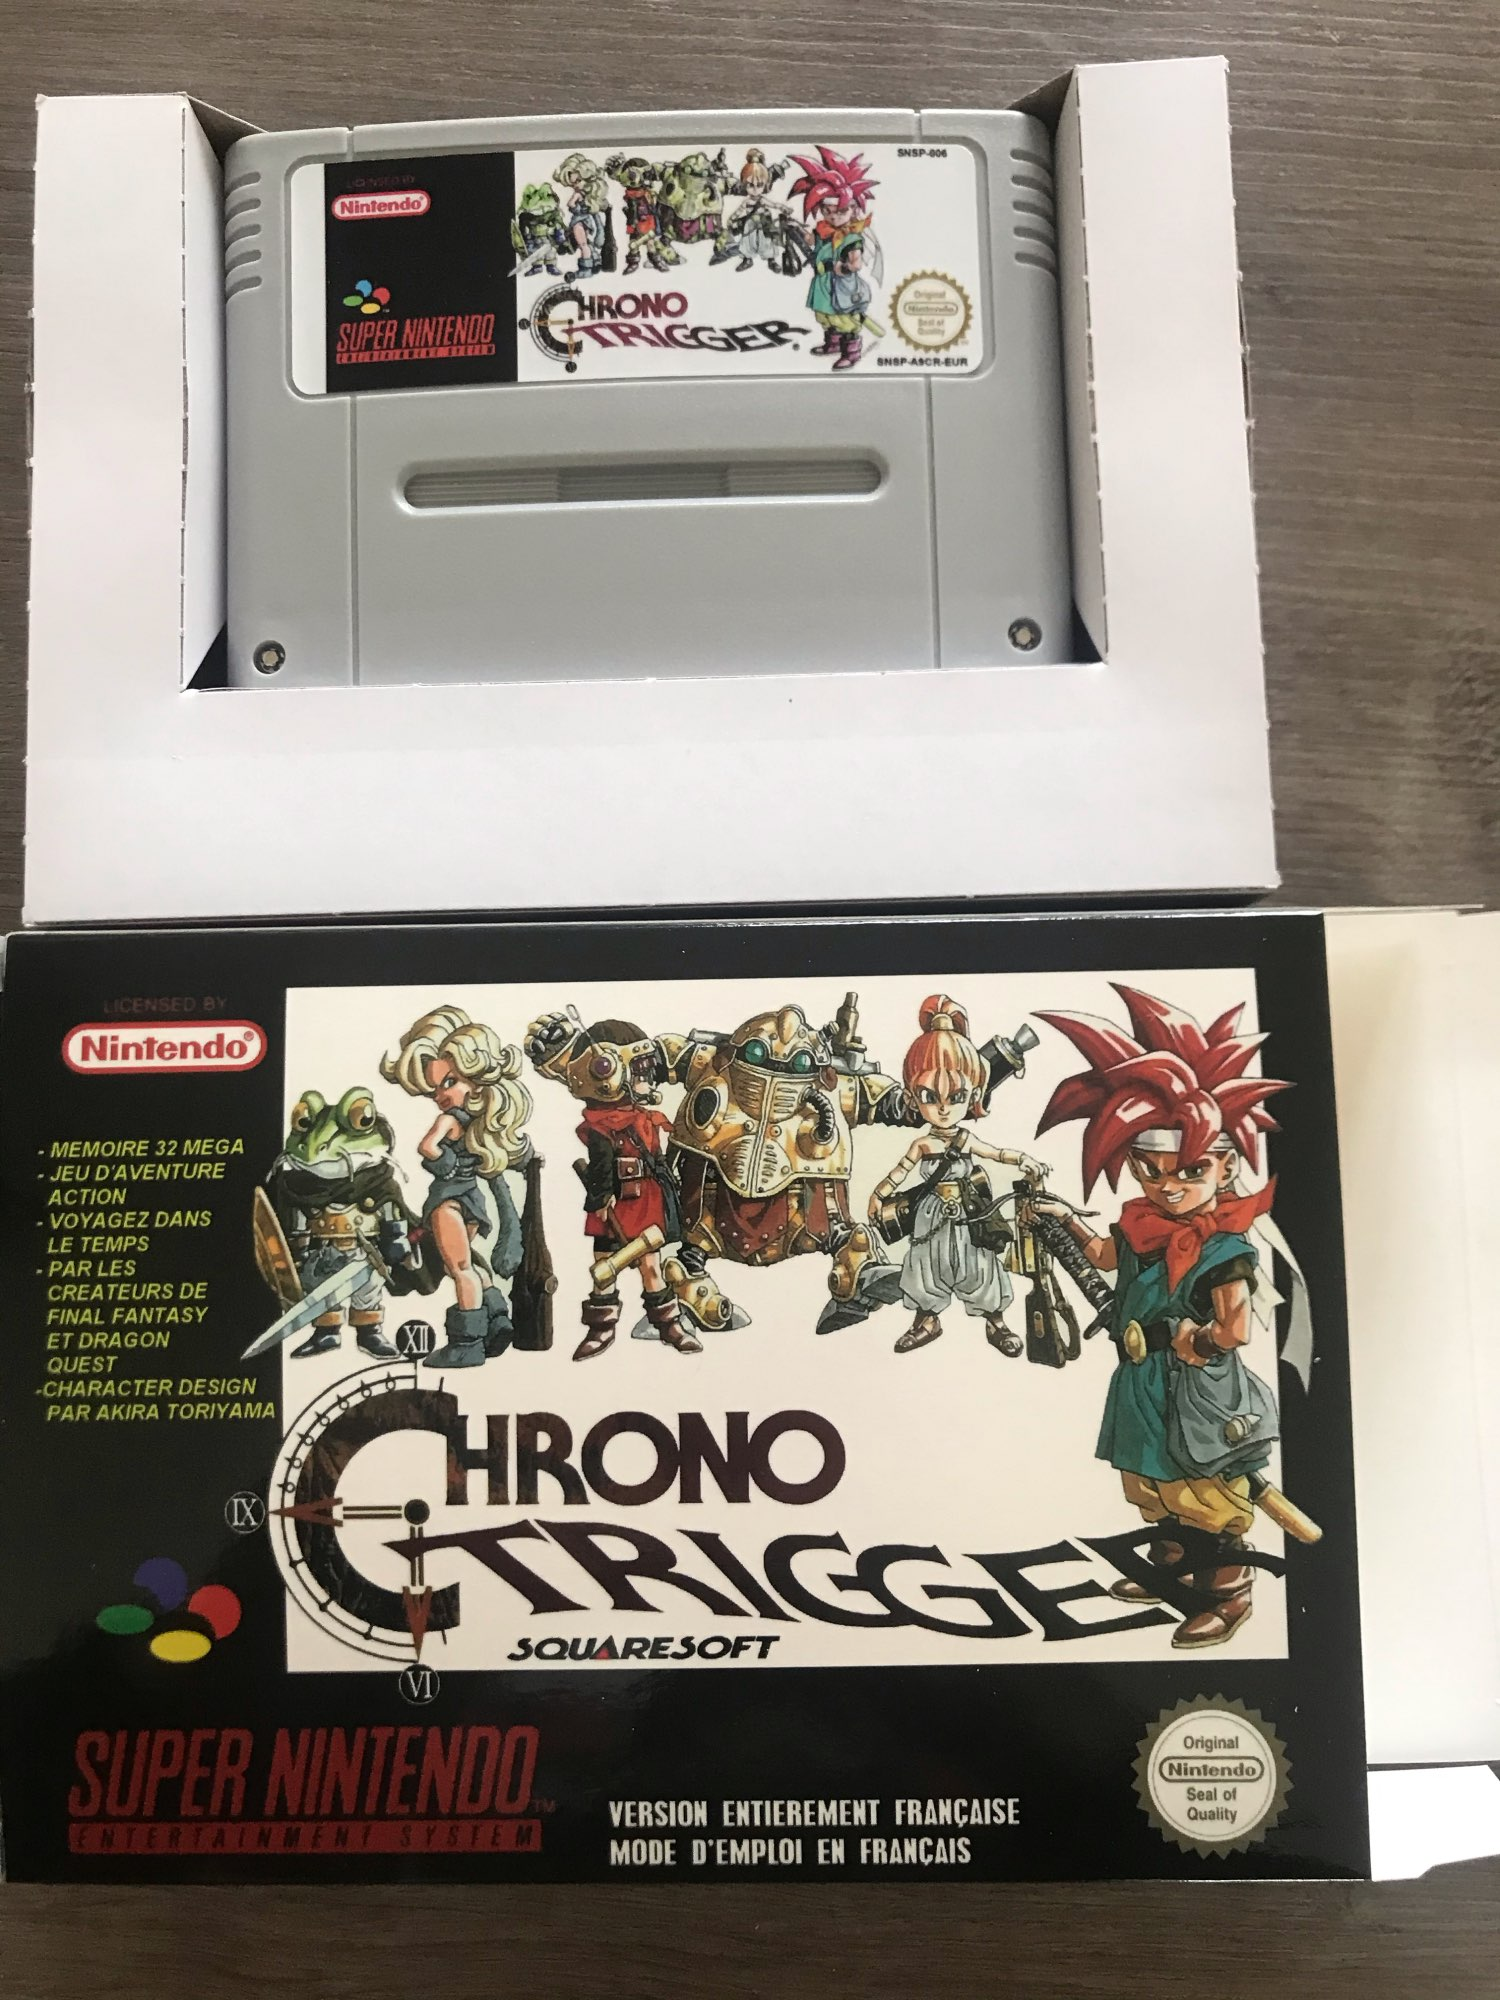 Chrono Trigger 16bits game cartridge with box for Pal console photo review